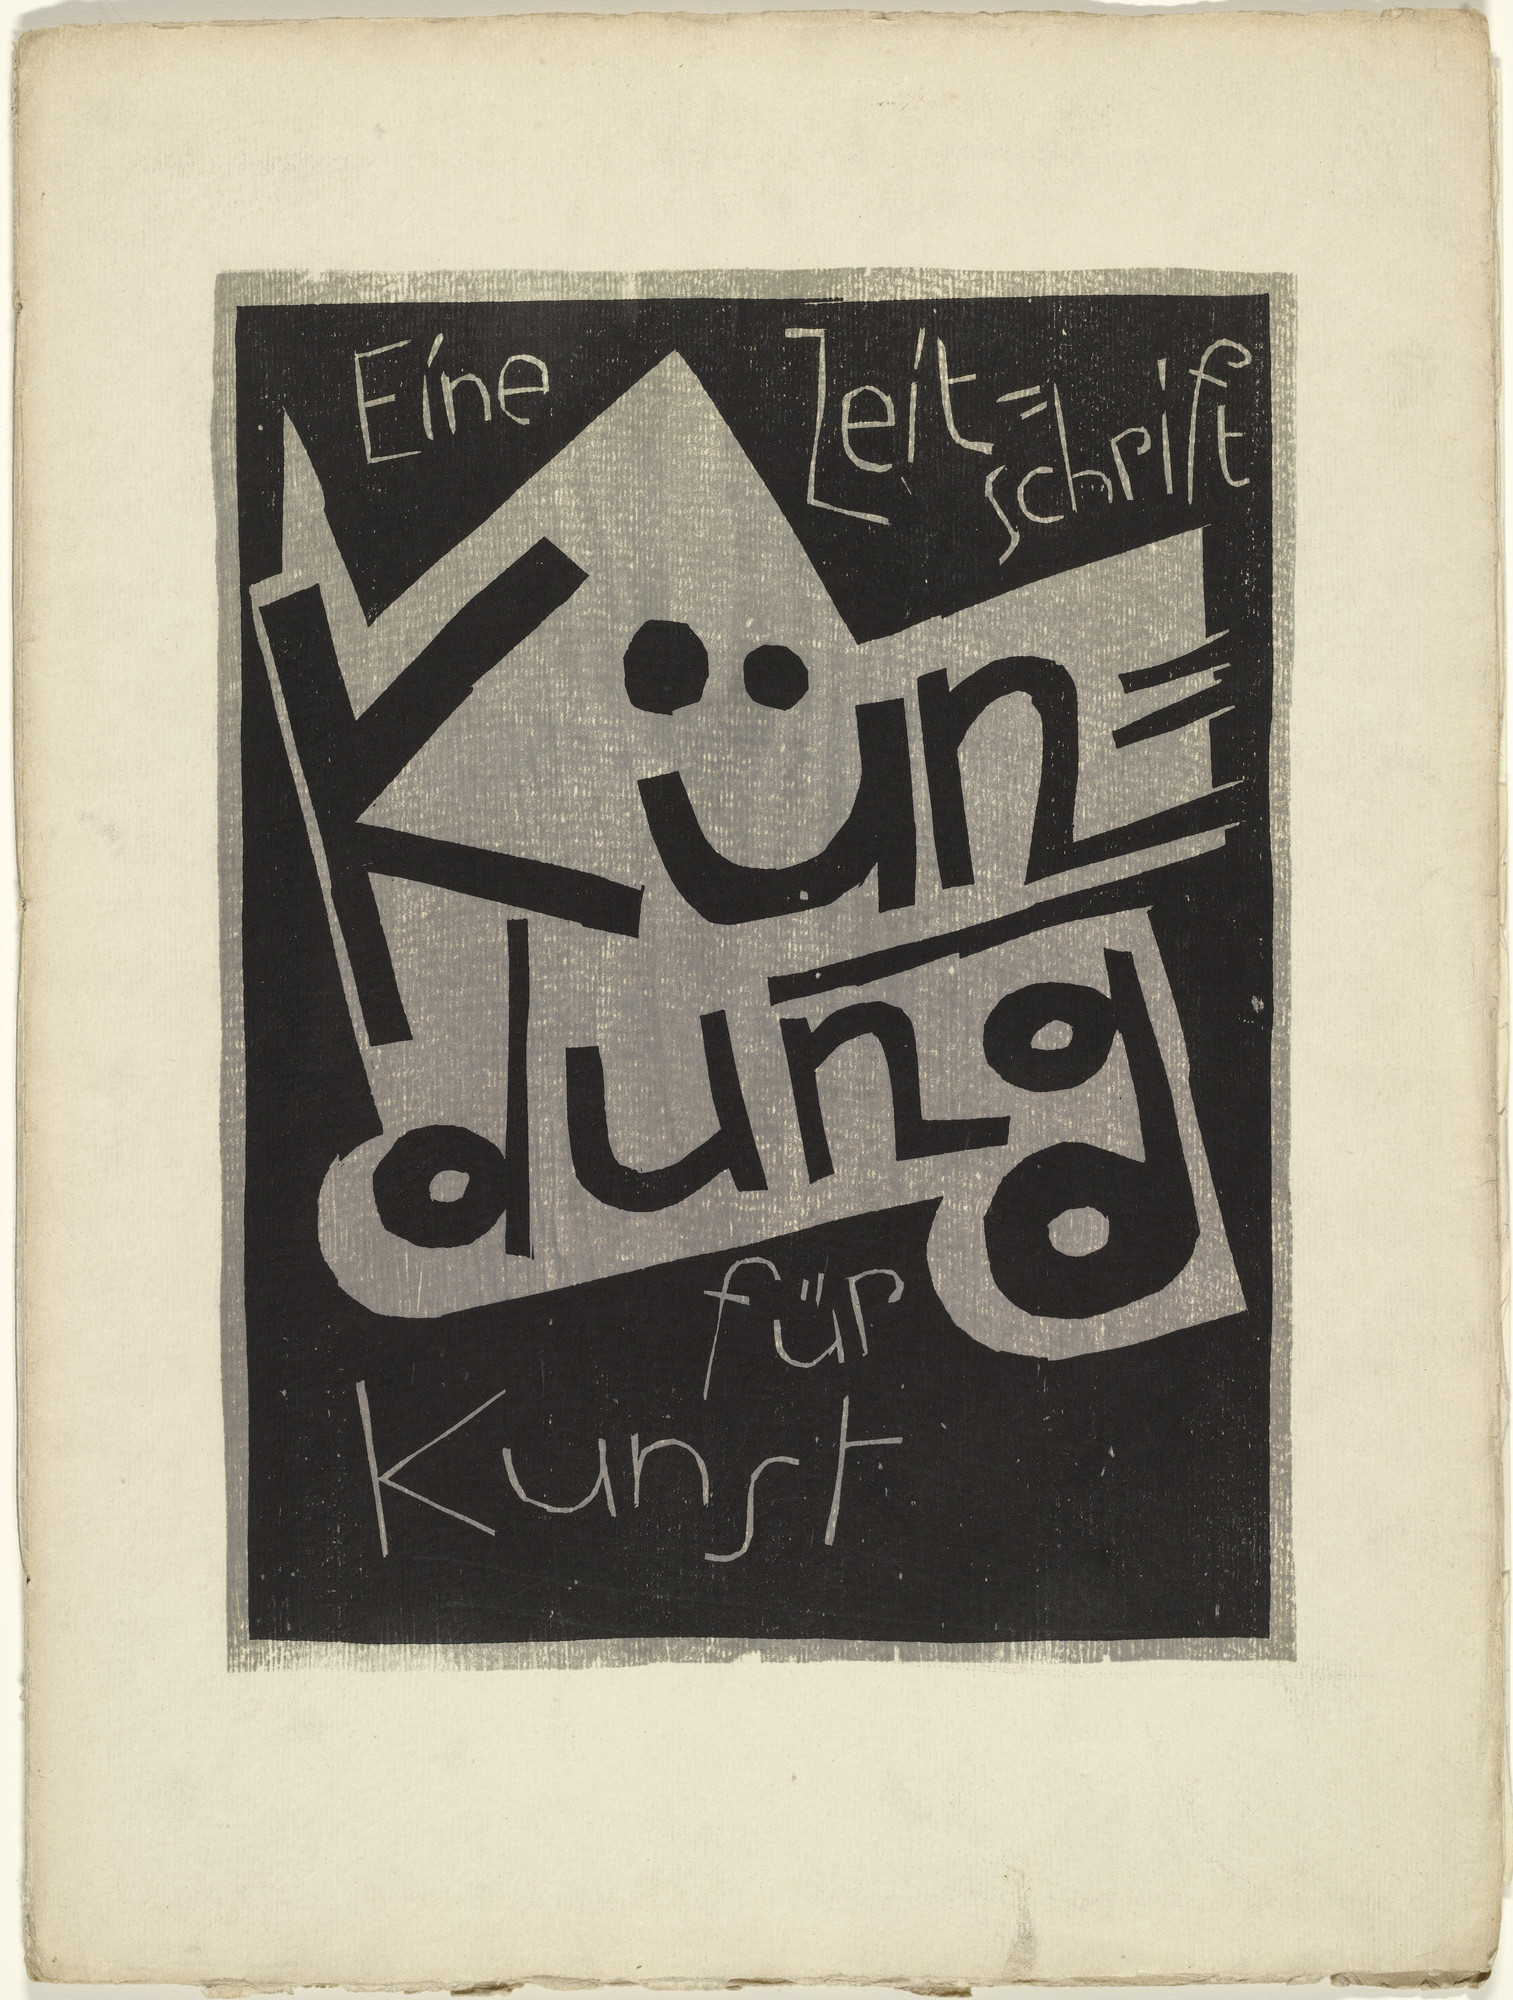 Karl Schmidt-Rottluff. Cover from the periodical Kündung, vol. 1, no. 2 (February 1921). 1921 (executed 1920)